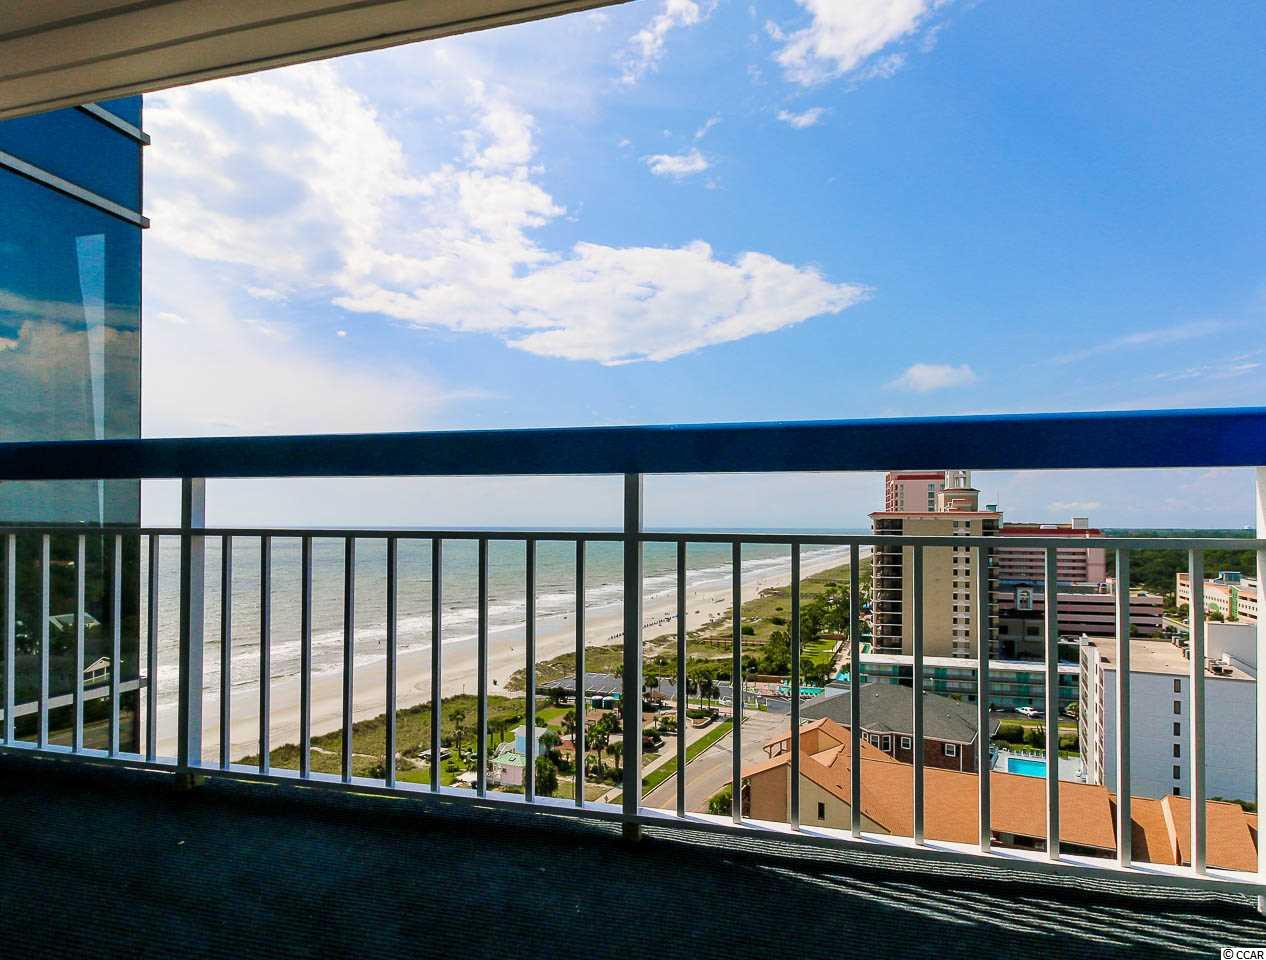 Condo For Sale At Forest Dunes In Myrtle Beach South Carolina Unit 1503 Listing Mls Number 1619981